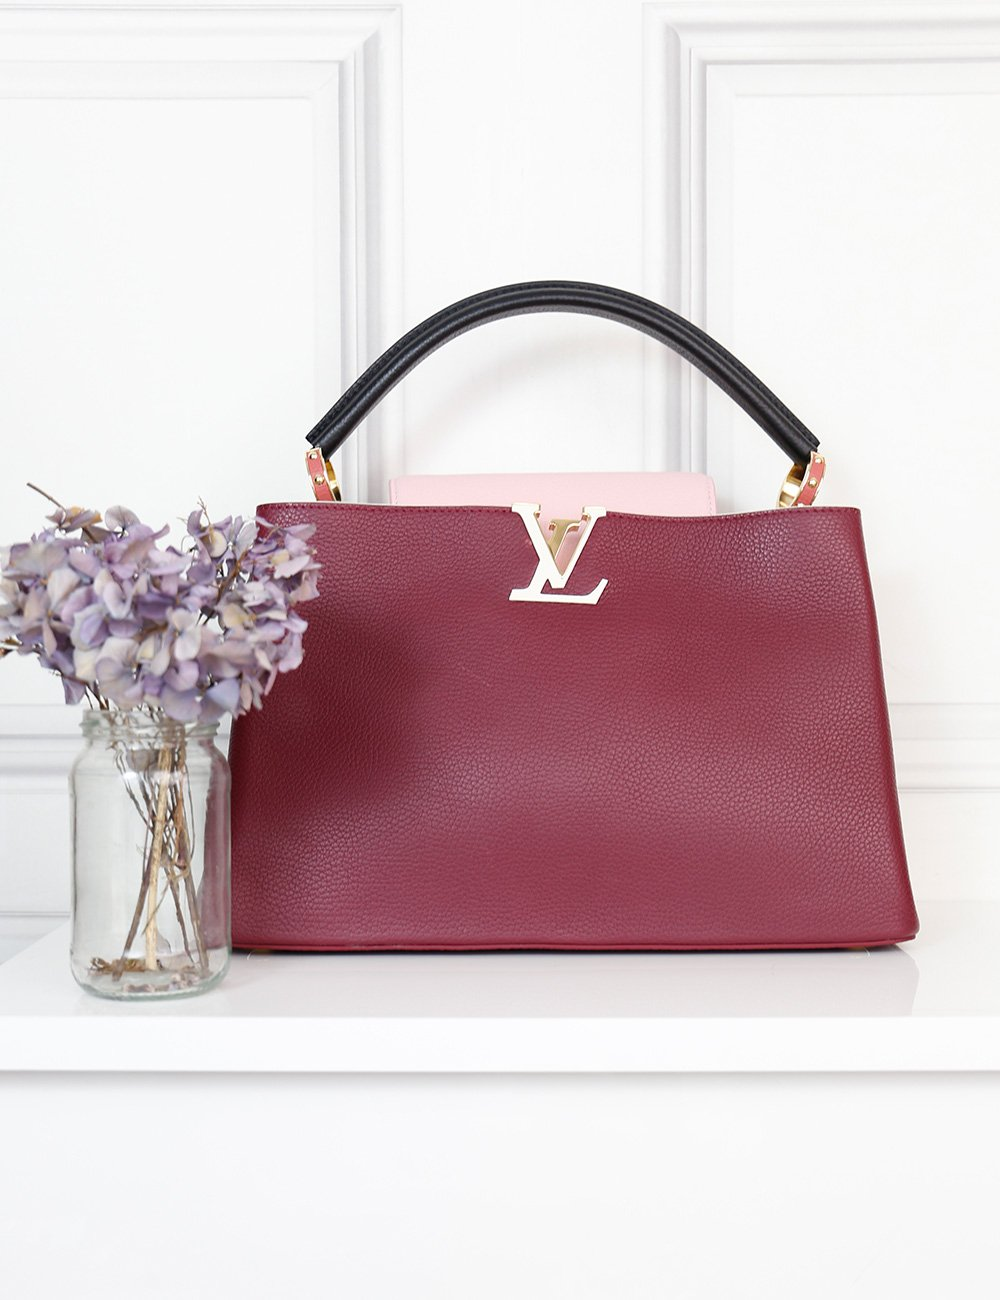 Louis Vuitton Burgundy Capucines Taurillon MM bag- My Wardrobe Mistakes